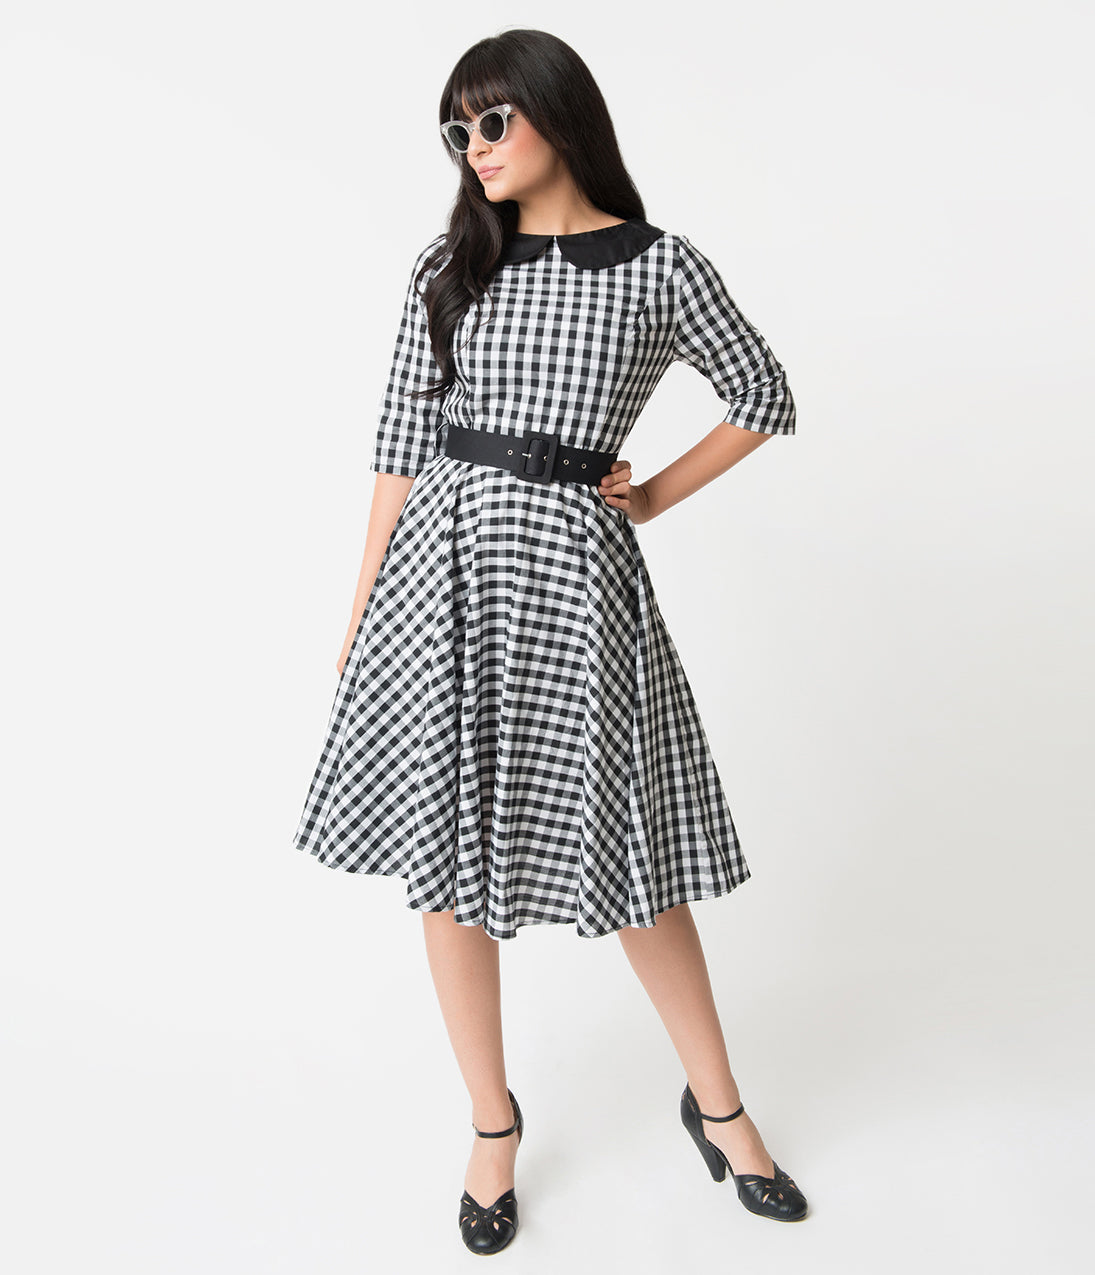 What Did Women Wear in the 1950s? 1950s Fashion Guide Black  White Gingham Cotton Half Sleeve Emily Swing Dress $68.00 AT vintagedancer.com